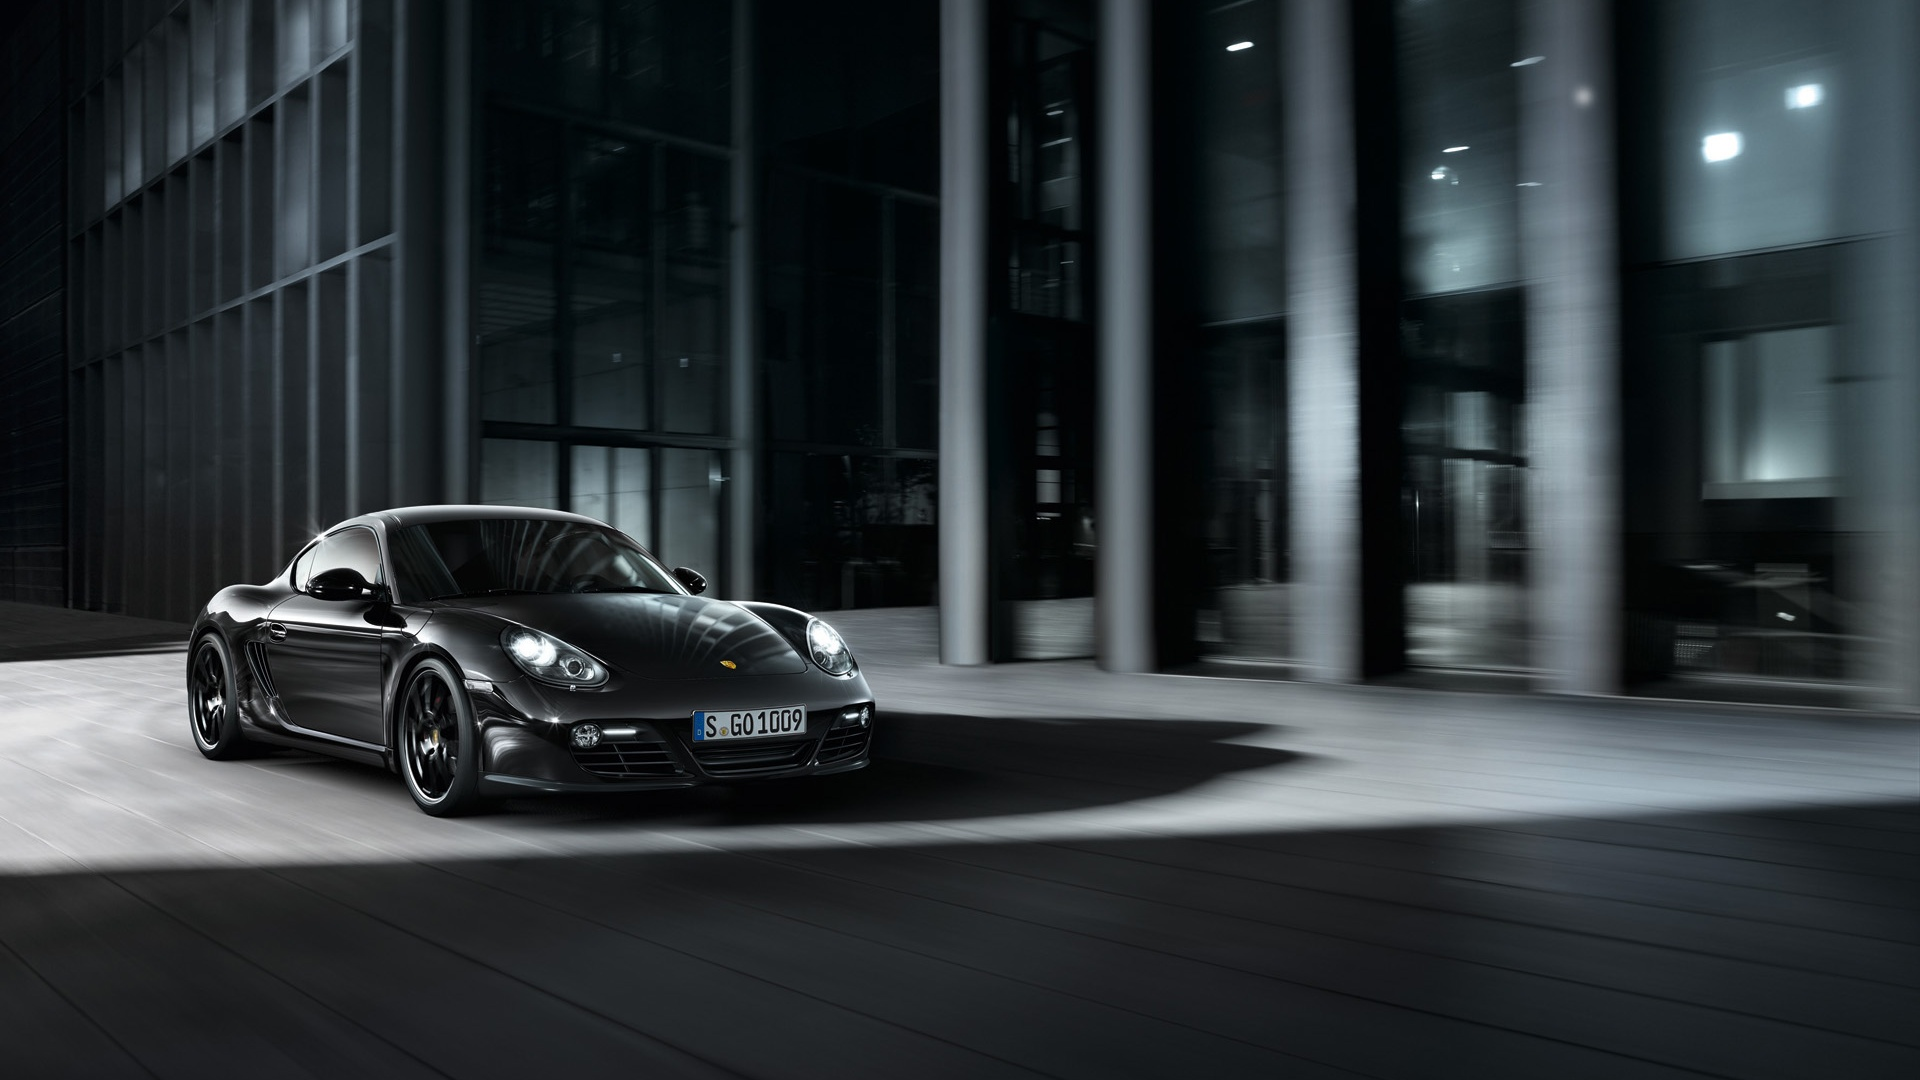 1920x1080 Cayman Black Edition Desktop Pc And Mac Wallpaper